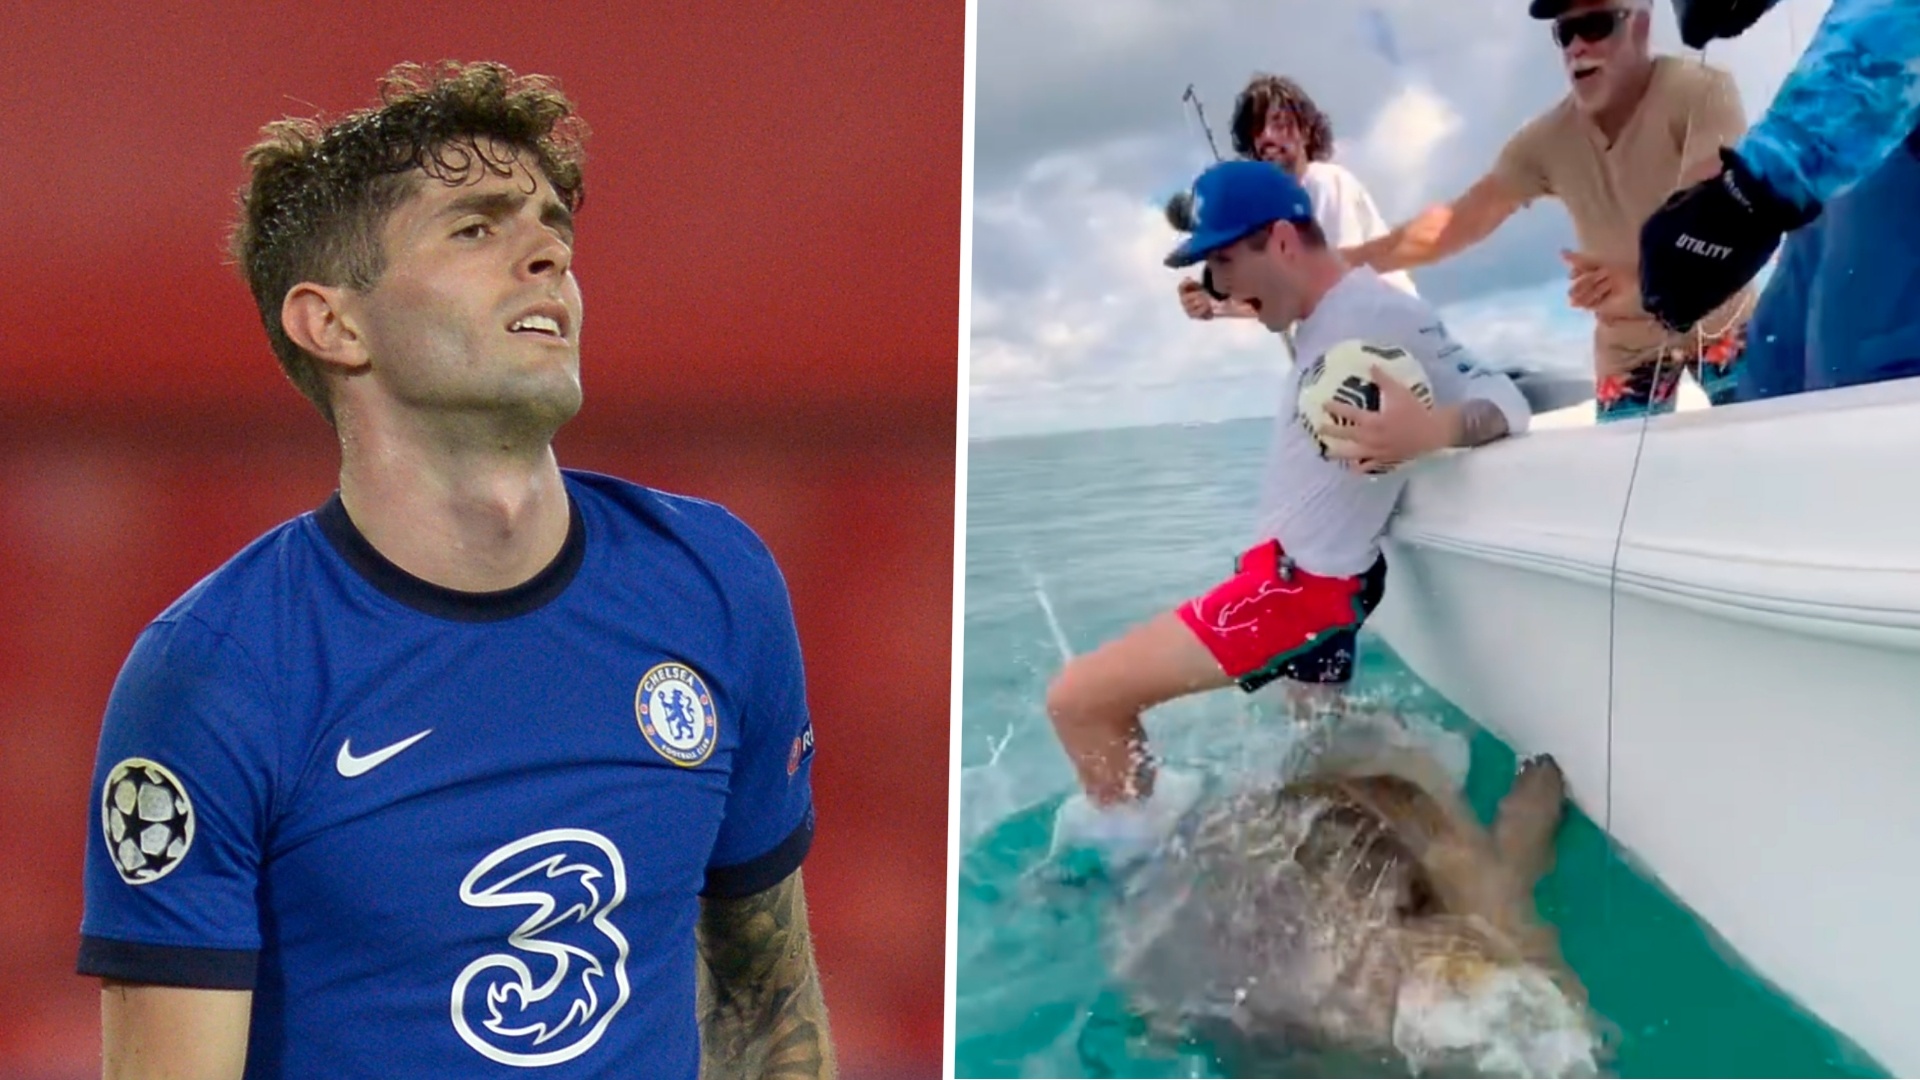 USMNT star Pulisic criticised after falling off boat on to endangered goliath grouper fish following ball juggling stunt